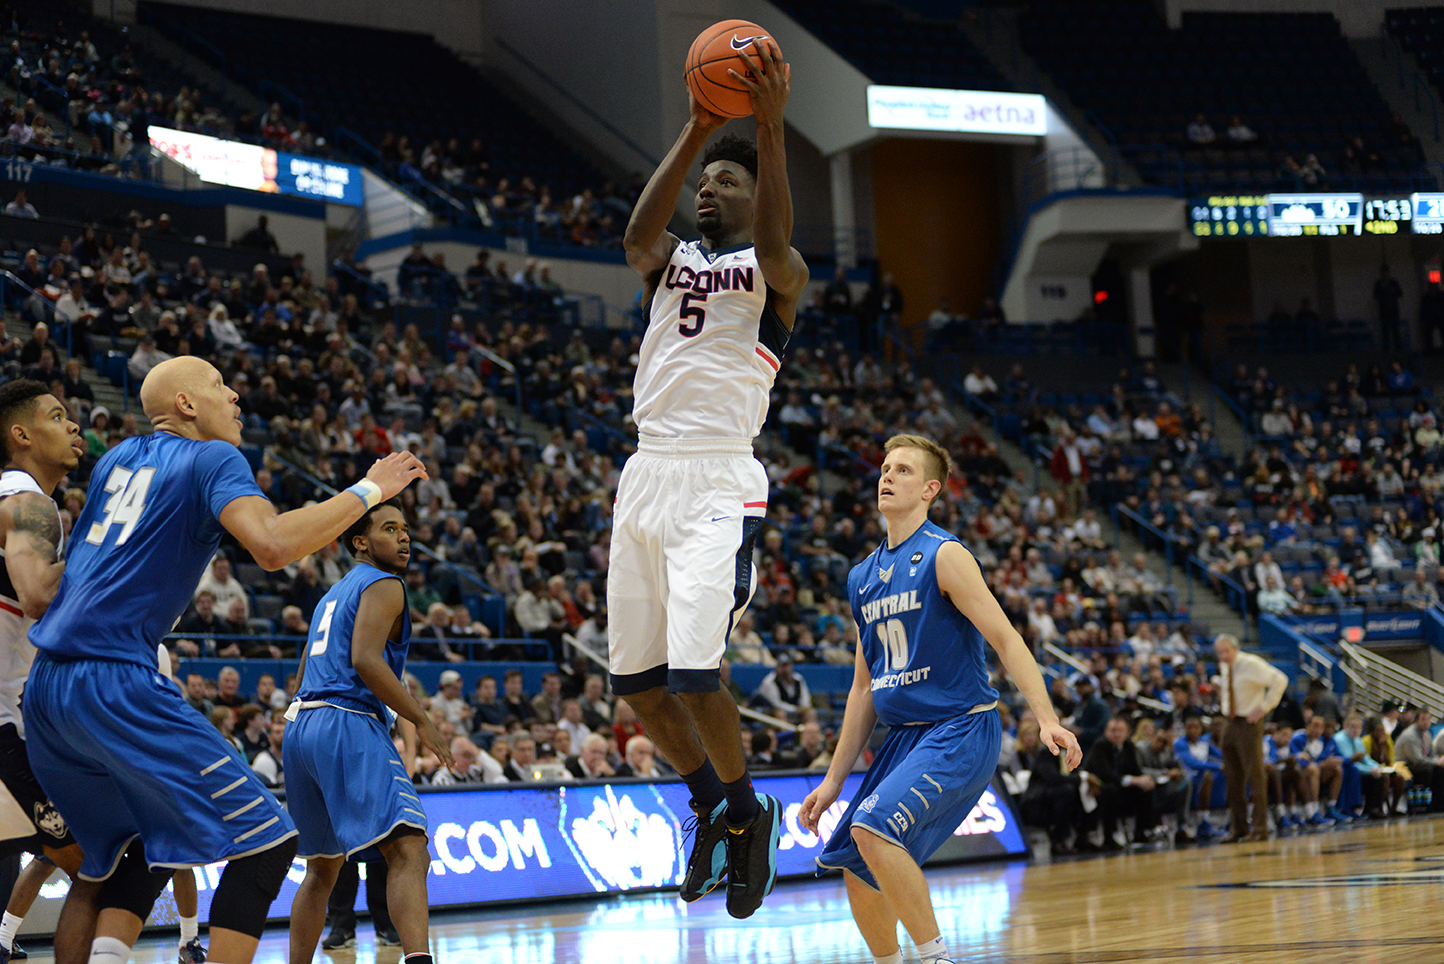 Forward Daniel Hamilton takes a jumper during UConn's 99-52 blowout of CCSU Wednesday afternoon. Hamilton finished with 11 points, 11 rebounds and 11 assists to record the 11th triple-double in school history. (Ashley Maher/The Daily Campus)